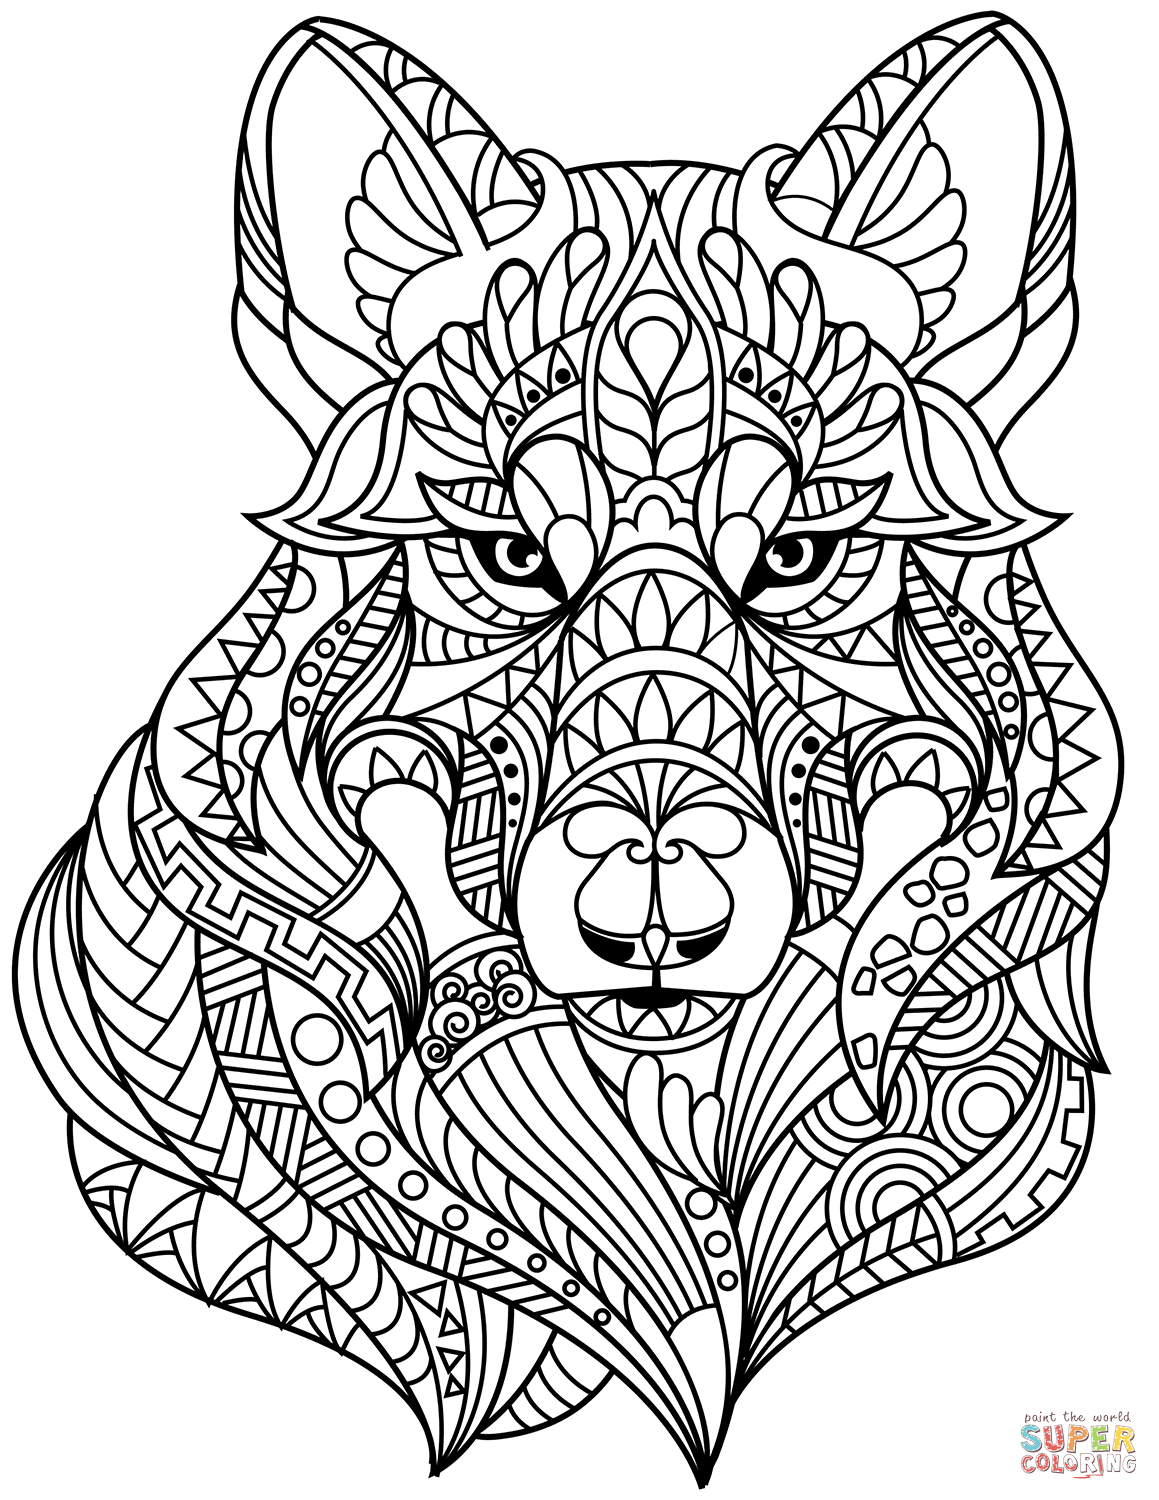 Wolf Head Zentangle Coloring Page From Zentangle Category Select From 29500 Printable Crafts Of Cart Animal Coloring Pages Abstract Coloring Pages Wolf Colors